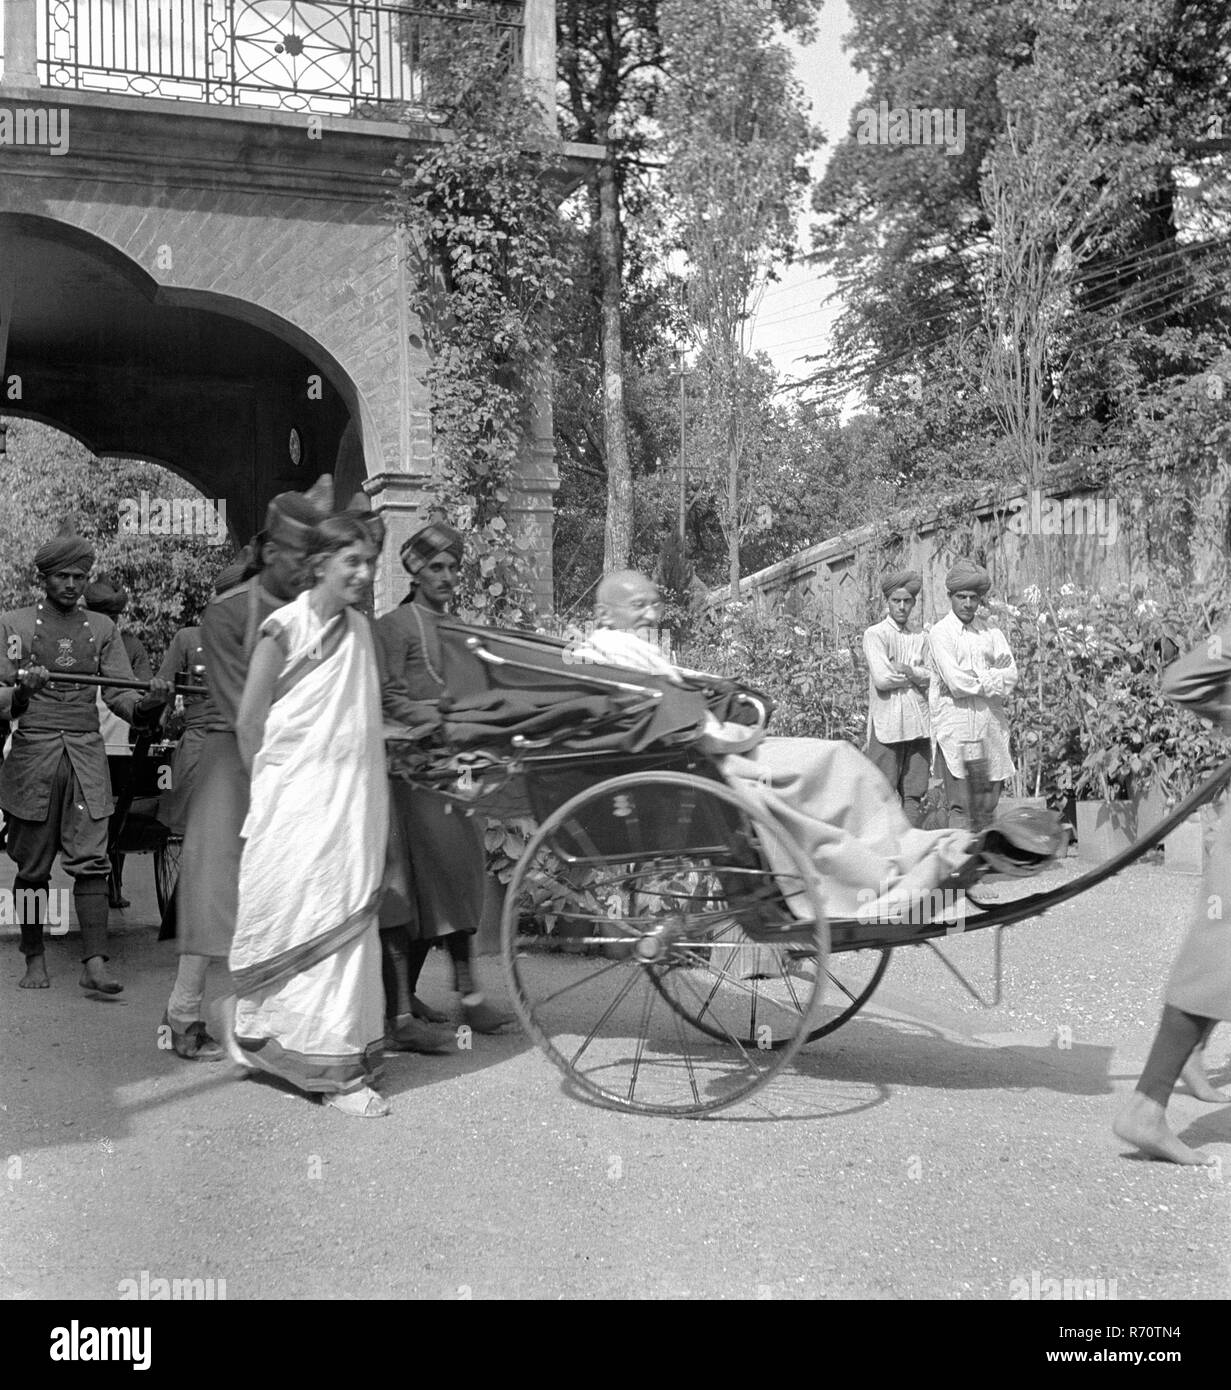 Mahatma Gandhi with Rajkumari Amrit Kaur on his way to a meeting with the British viceroy, September 1939 - MODEL RELEASE NOT AVAILABLE - Stock Image